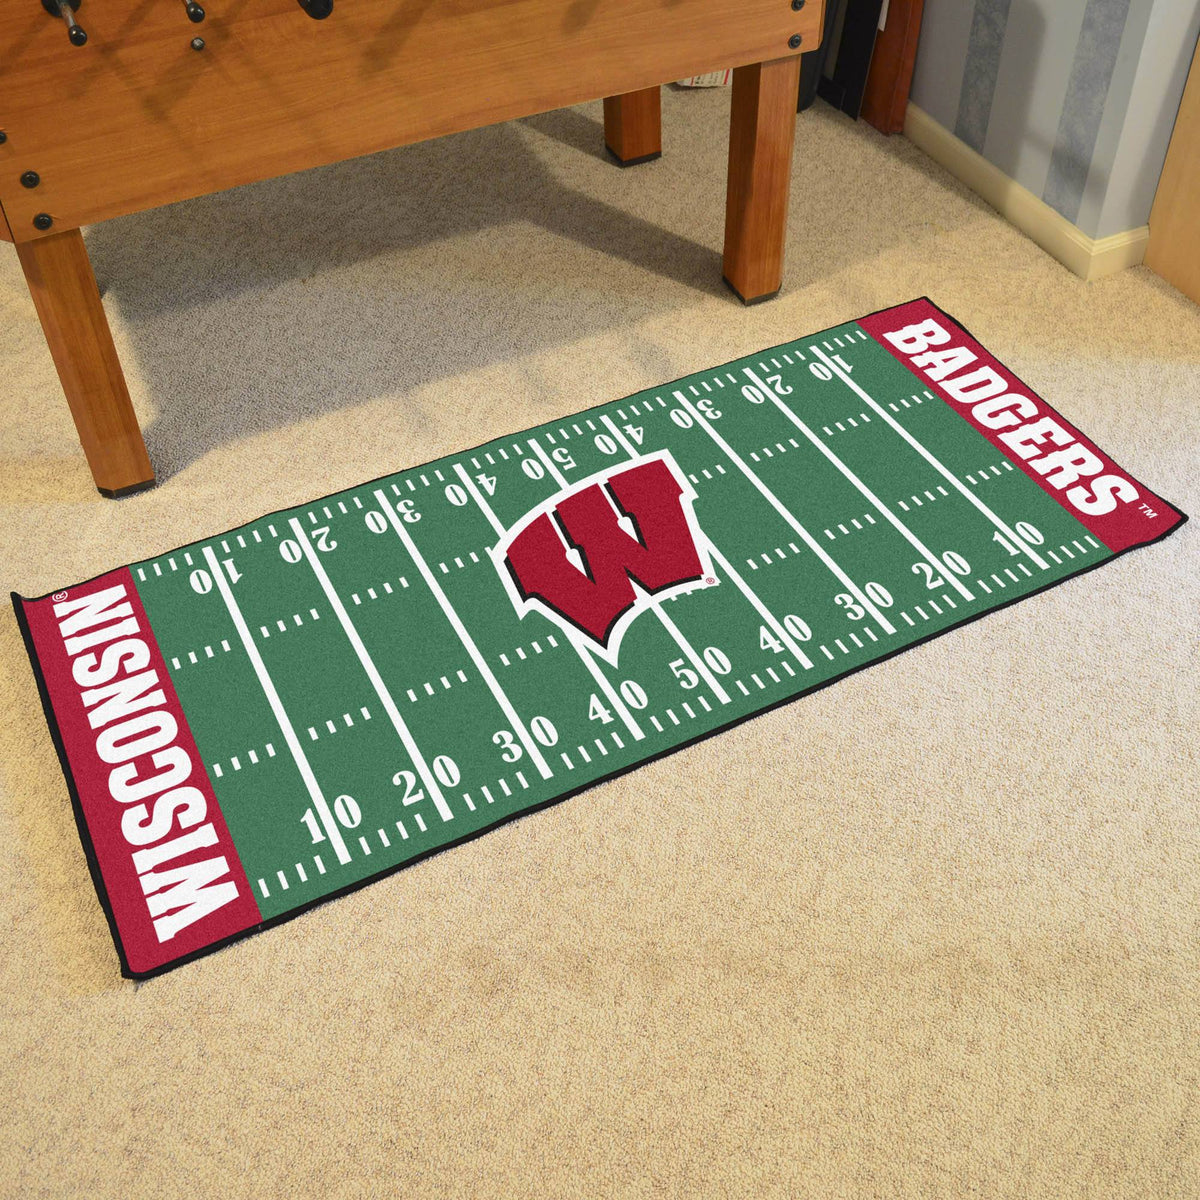 Collegiate - Football Field Runner Collegiate Mats, Rectangular Mats, Football Field Runner, Collegiate, Home Fan Mats Wisconsin